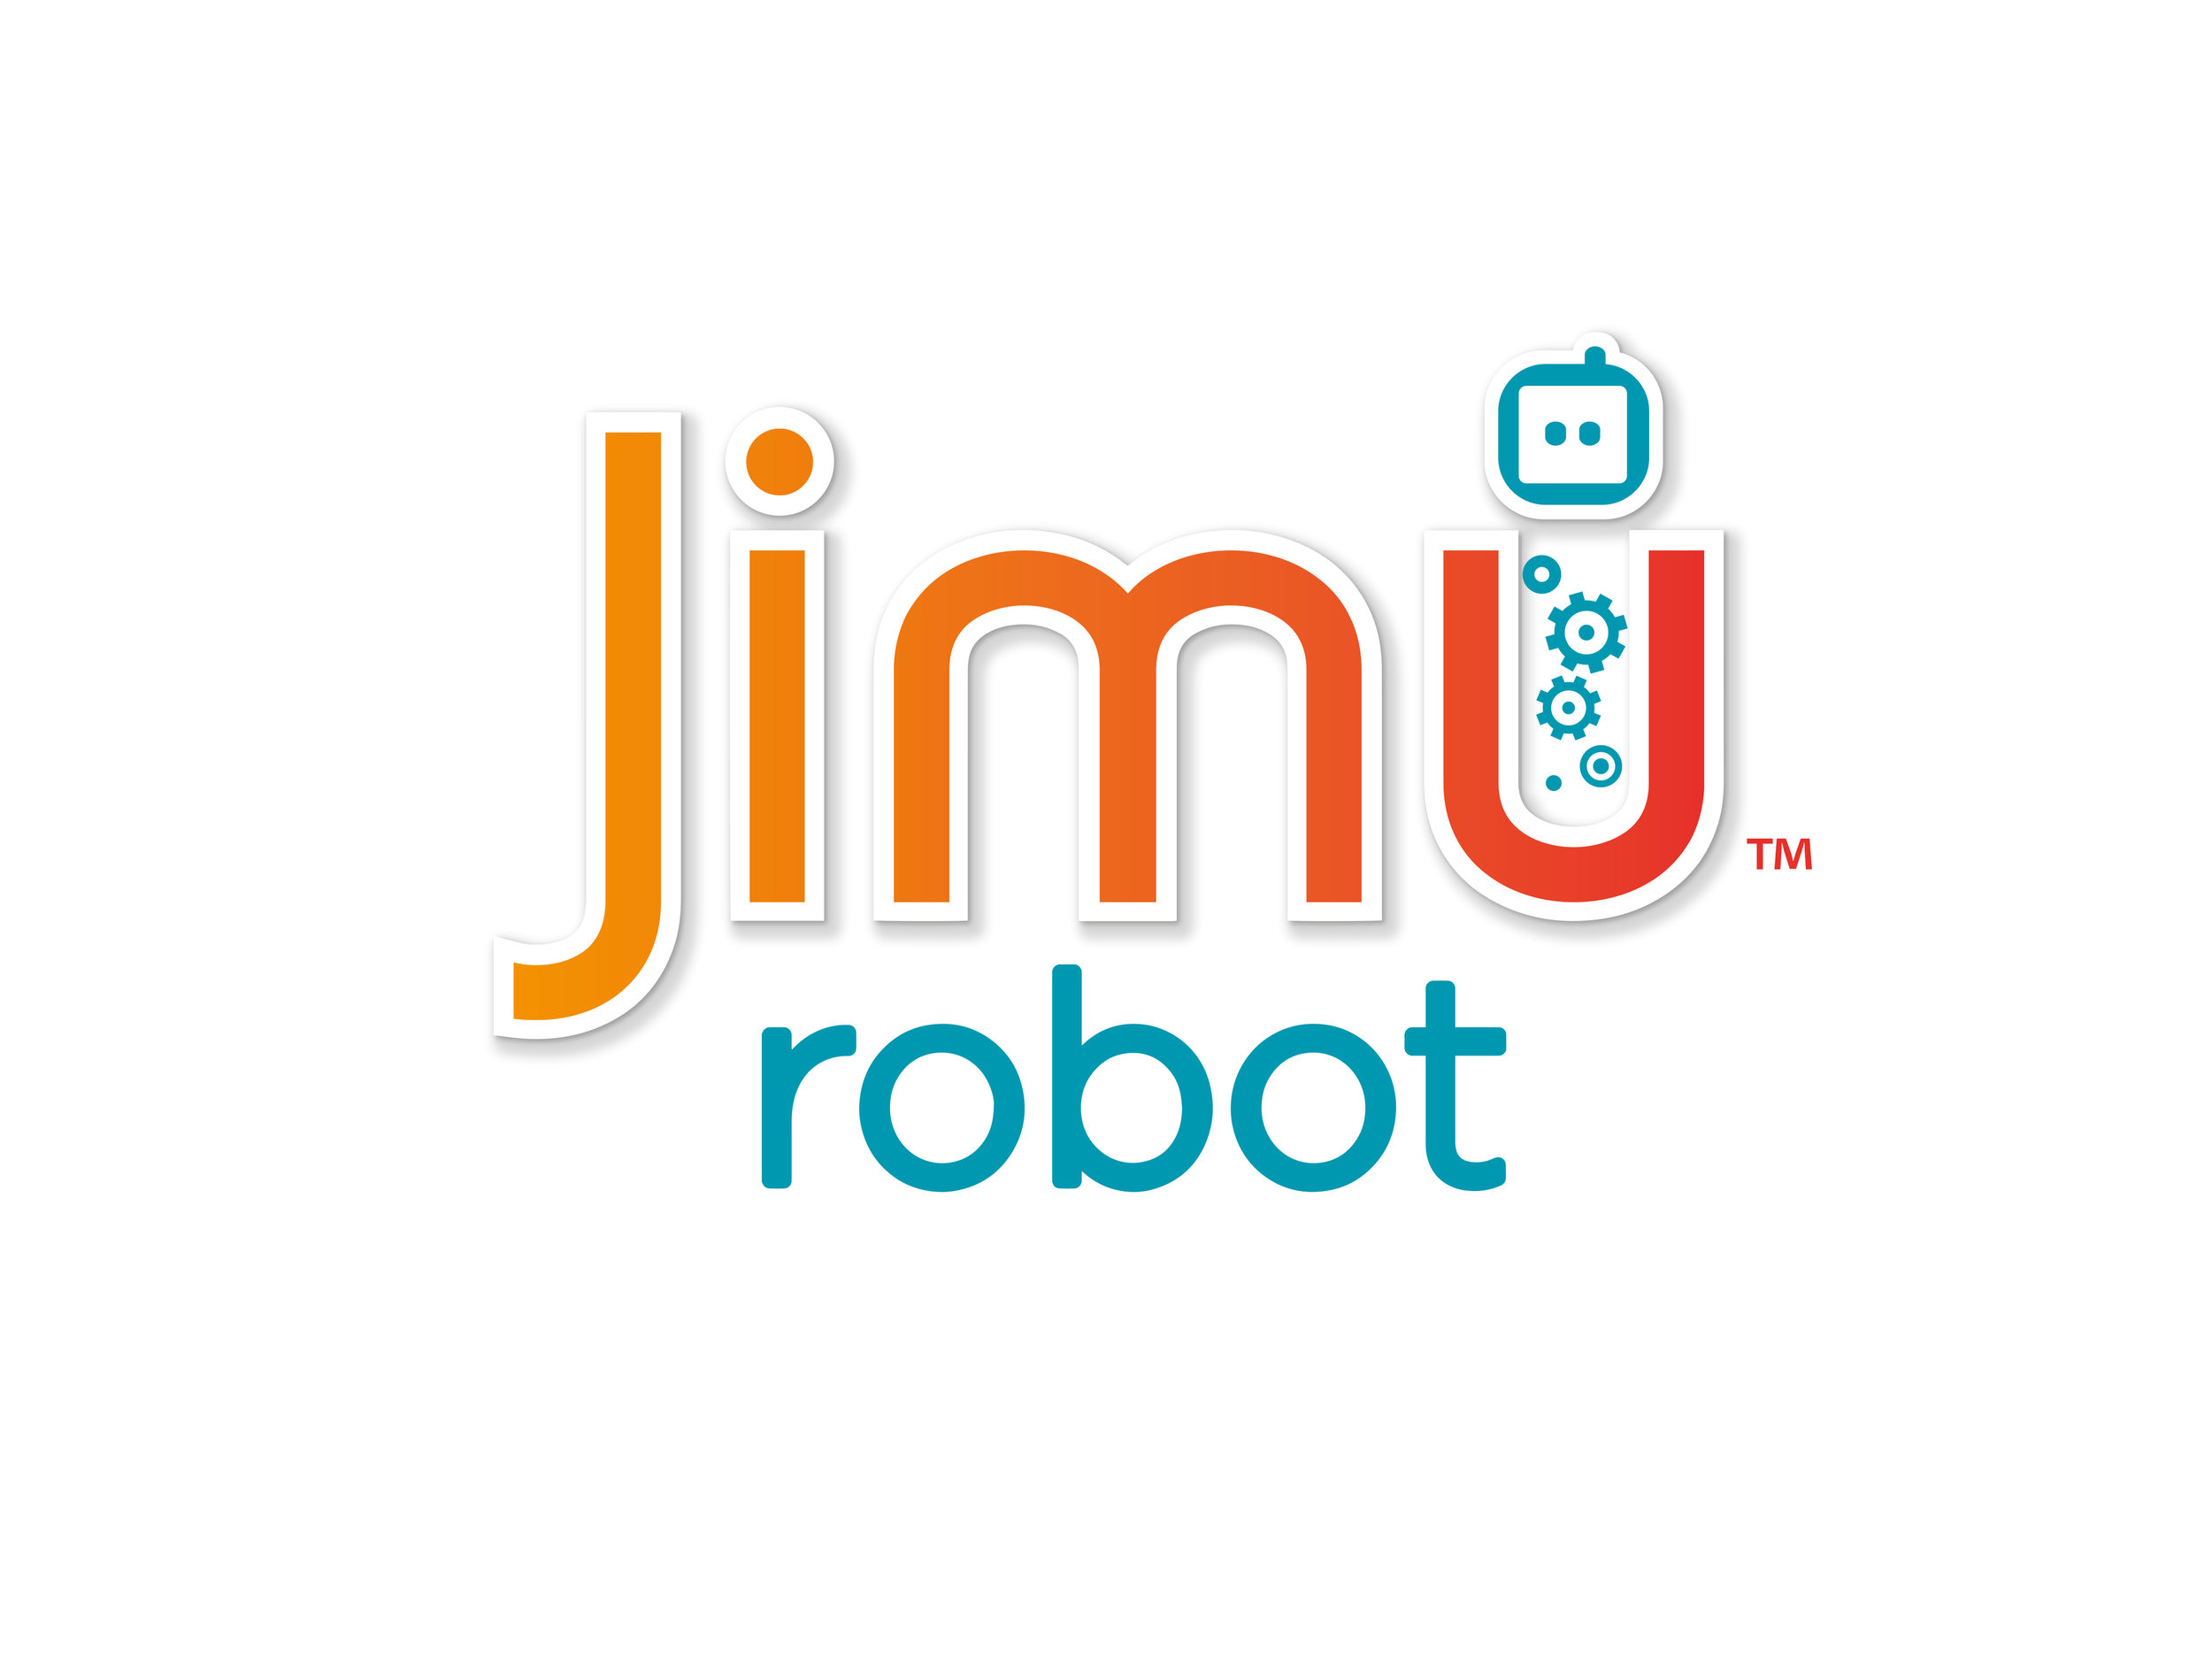 CLICK HERE TO SEE MORE ASSETS WHOVILLE HAS CREATED FOR JIMU ROBOT